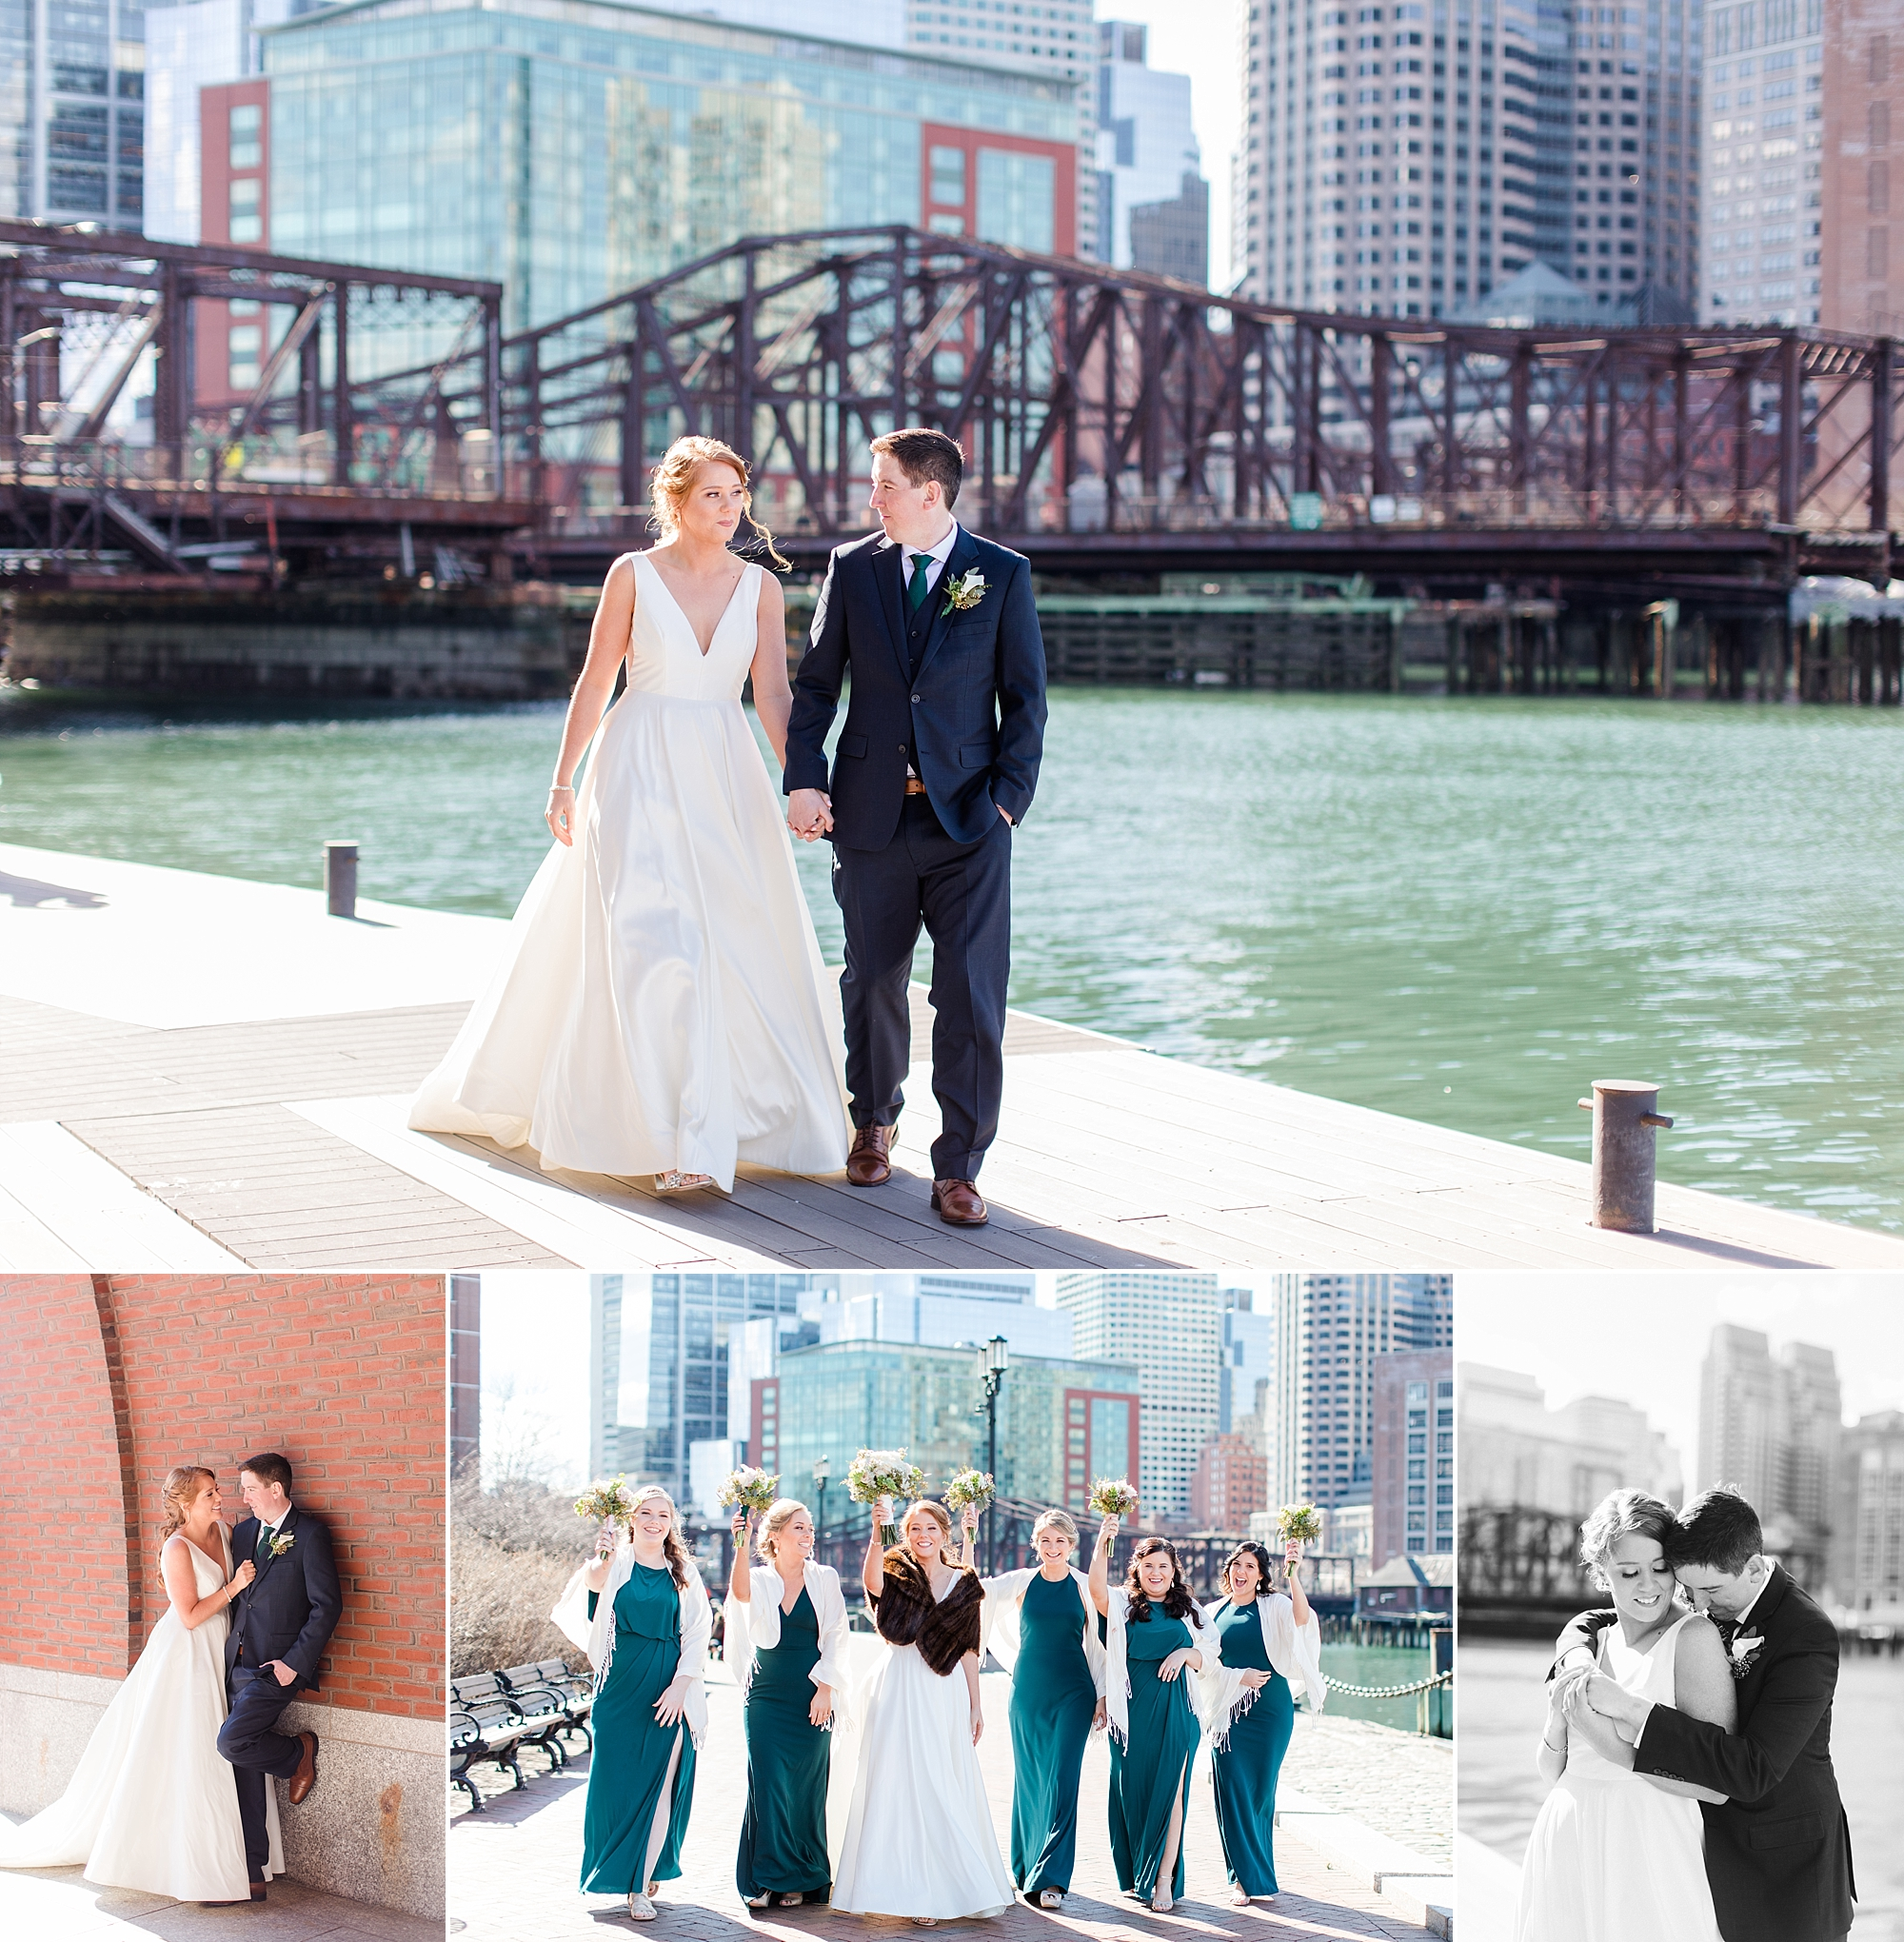 eisleyimages-irish-wedding-boston-seaport_0106.jpg